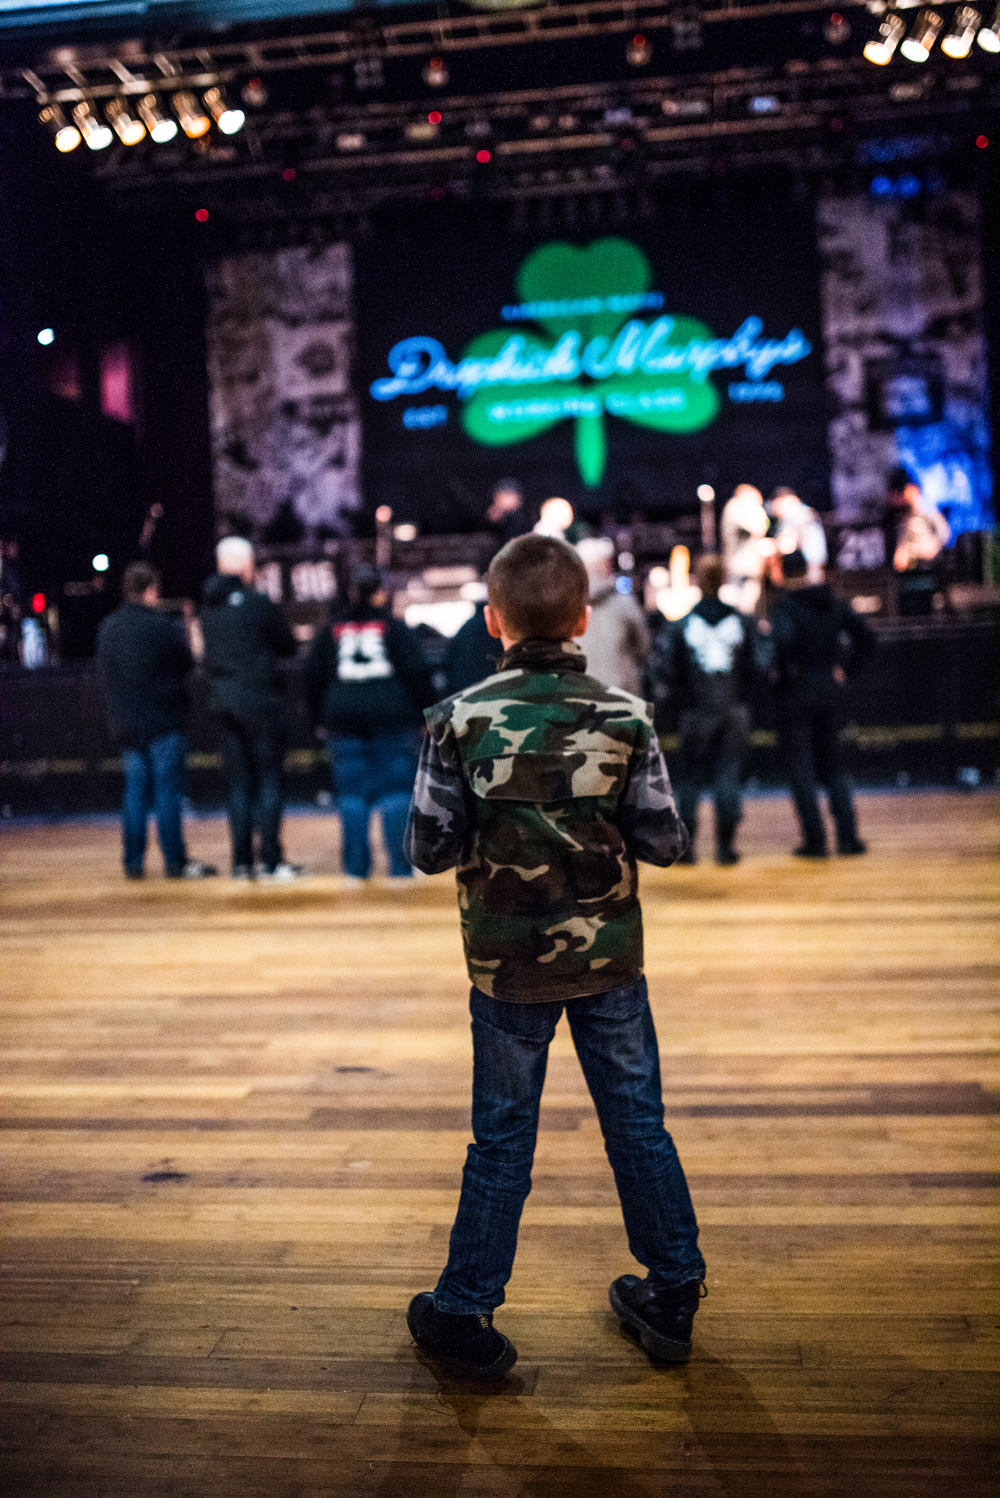 Dropkick Murphys HOB Boston Gregory Nolan 04.18.16 -27.jpg